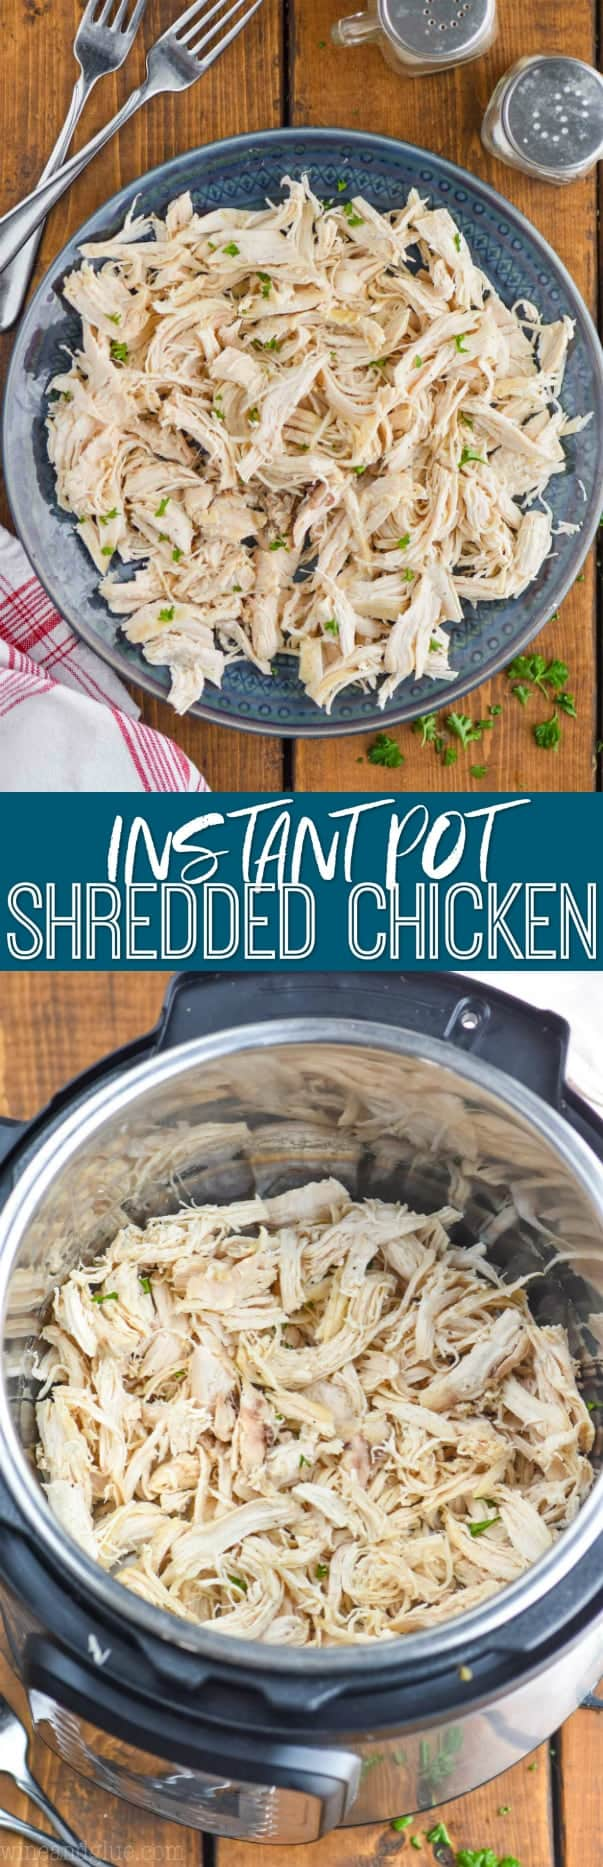 collage of pictures of instant pot shredded chicken recipe